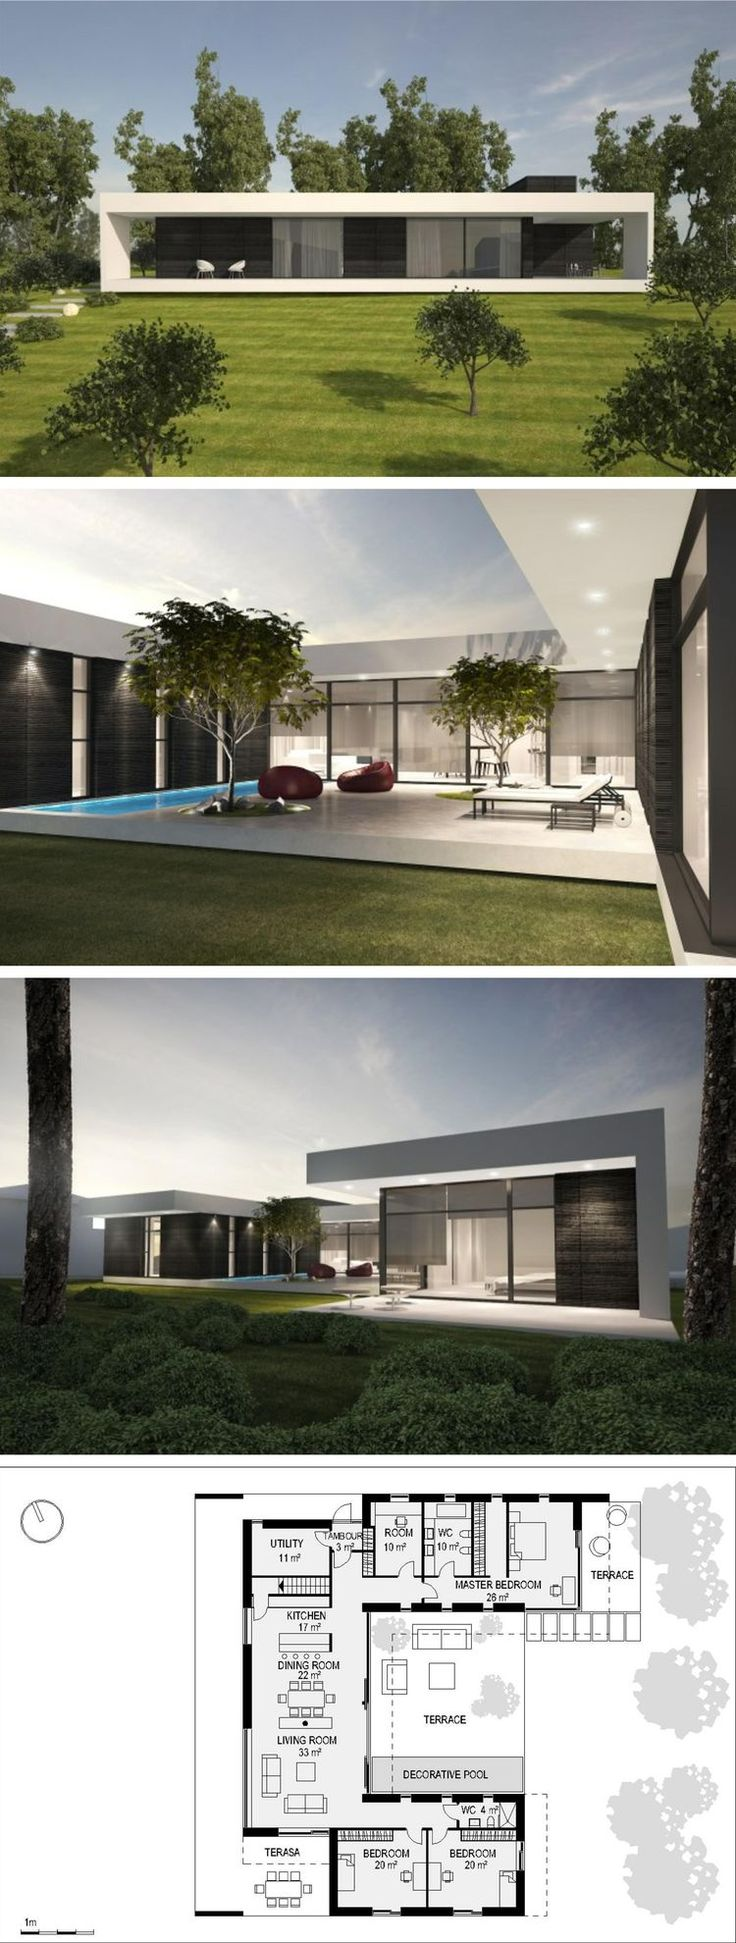 1000+ images about S on Pinterest House design, Villas and ... - ^